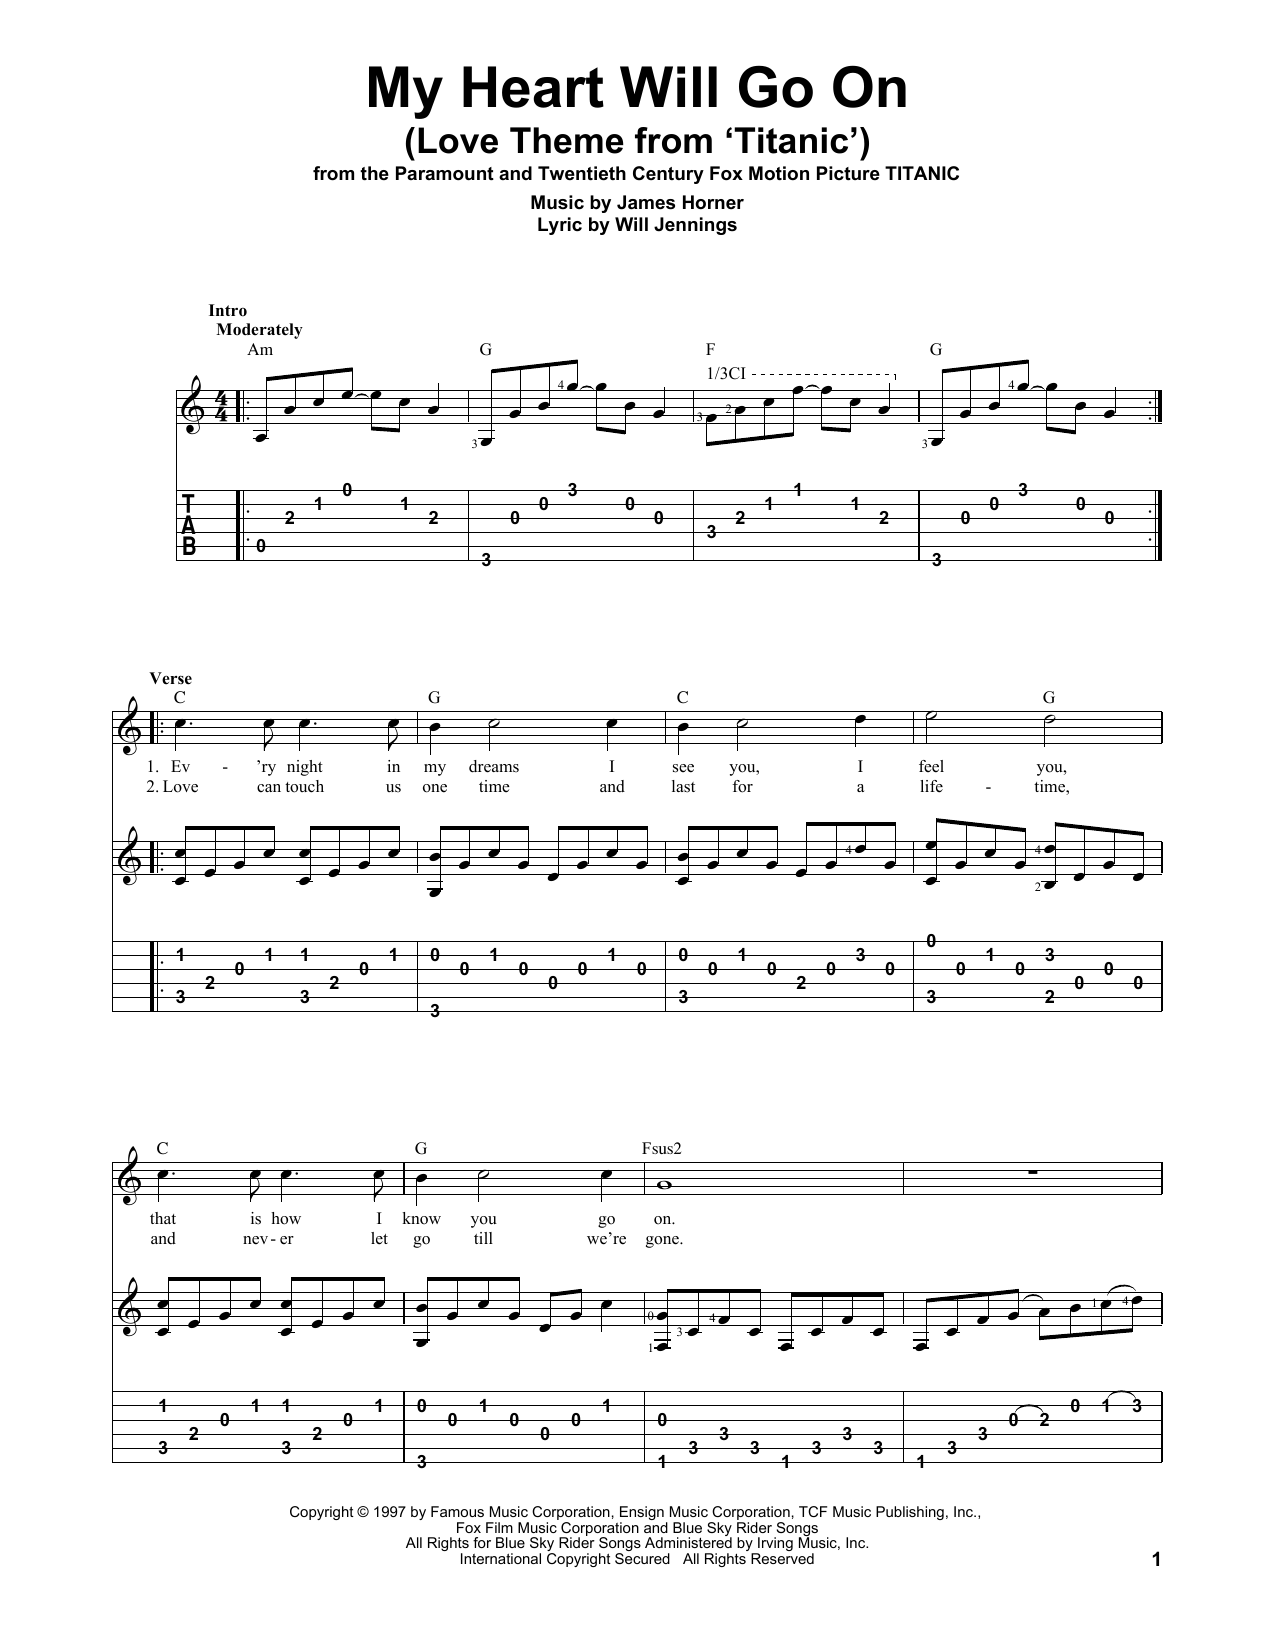 My Heart Will Go On (Love Theme from Titanic) Guitar Tab by Celine Dion (Guitar Tab u2013 83252)